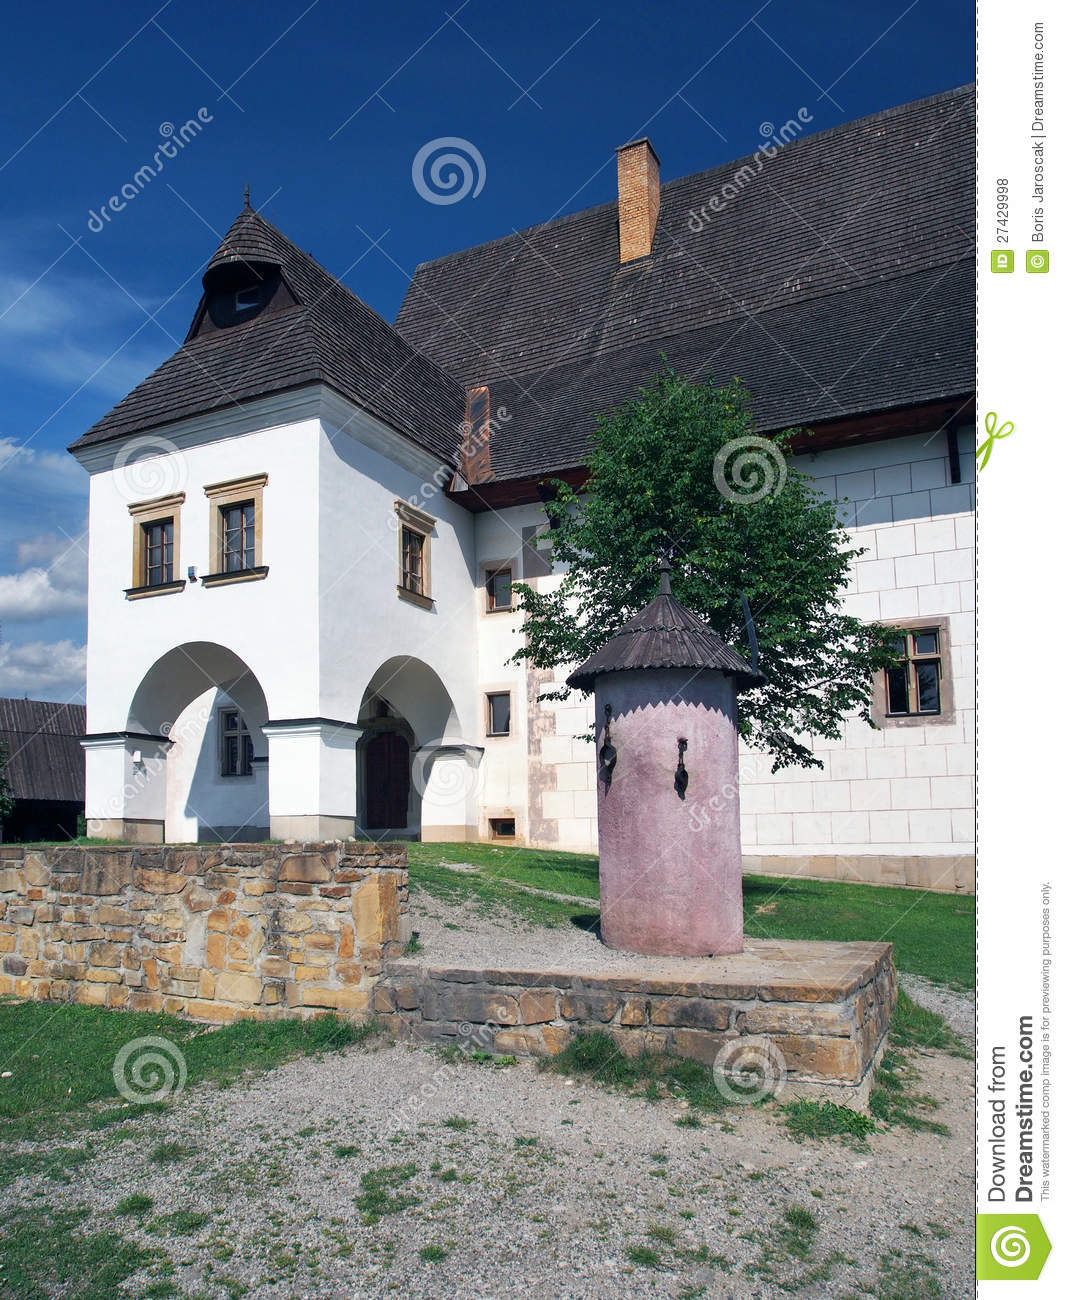 Rare manor house and pillar of shame in Pribylina